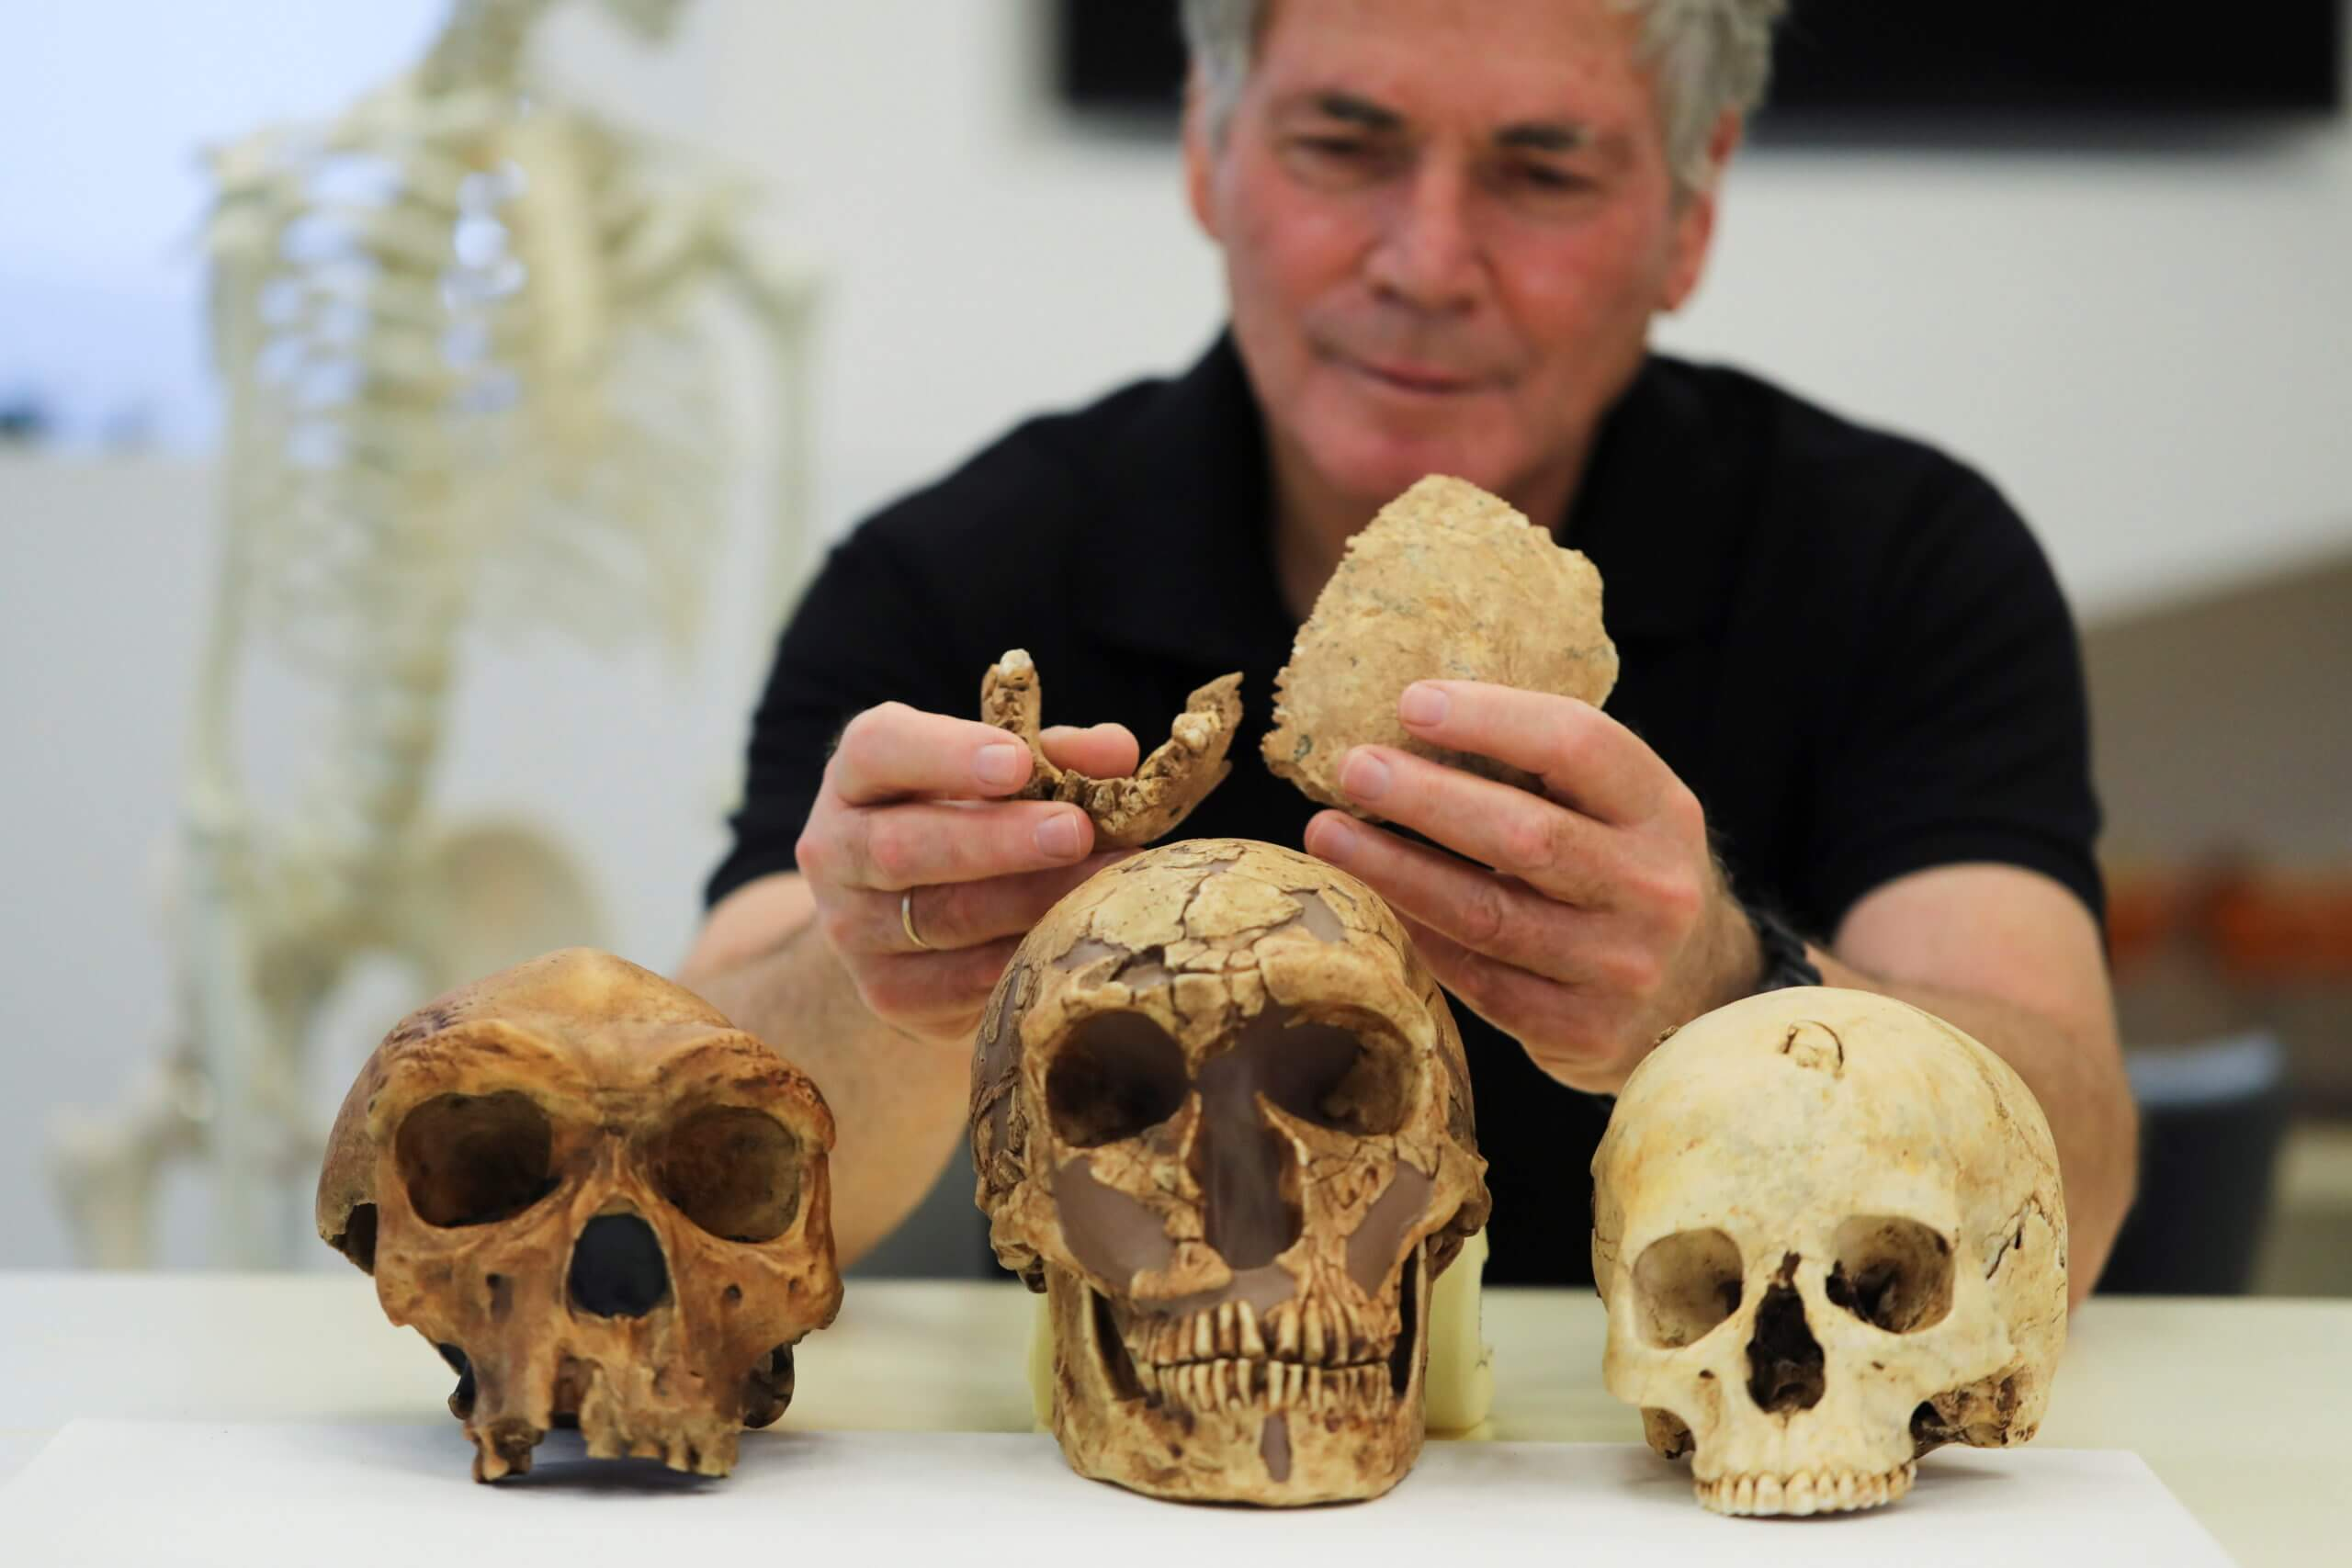 Research team discovers Bones of new type of early human in Israel